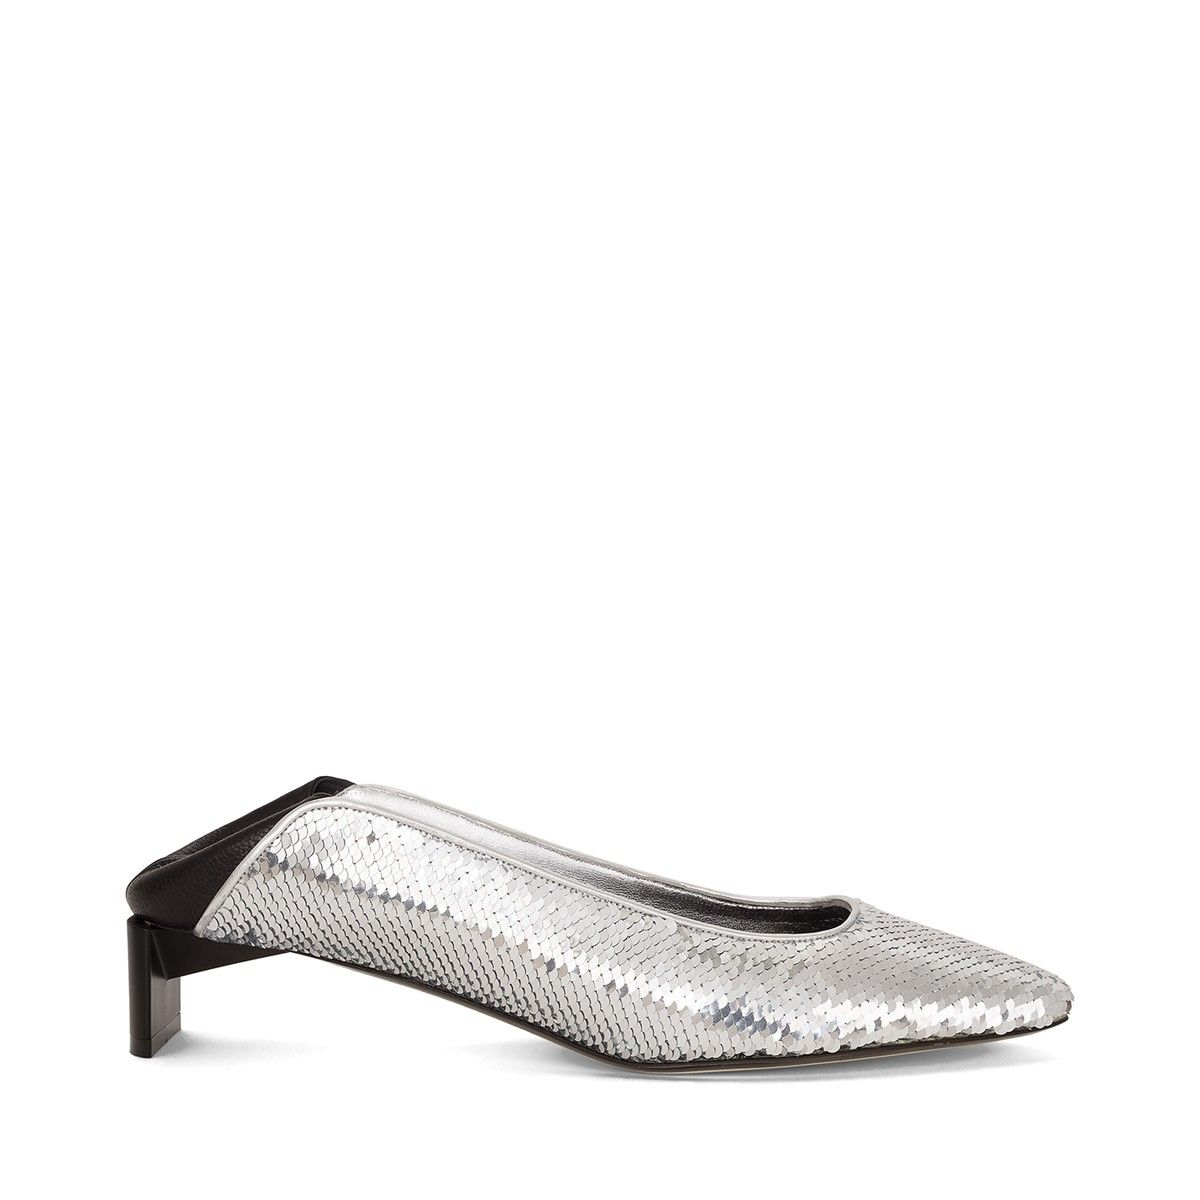 c38dc8ddd4e Loewe Shoes - Low Heel Slipper silver Discover Loewe Shoes products, like  our Low Heel Slipper silver. Enter now.